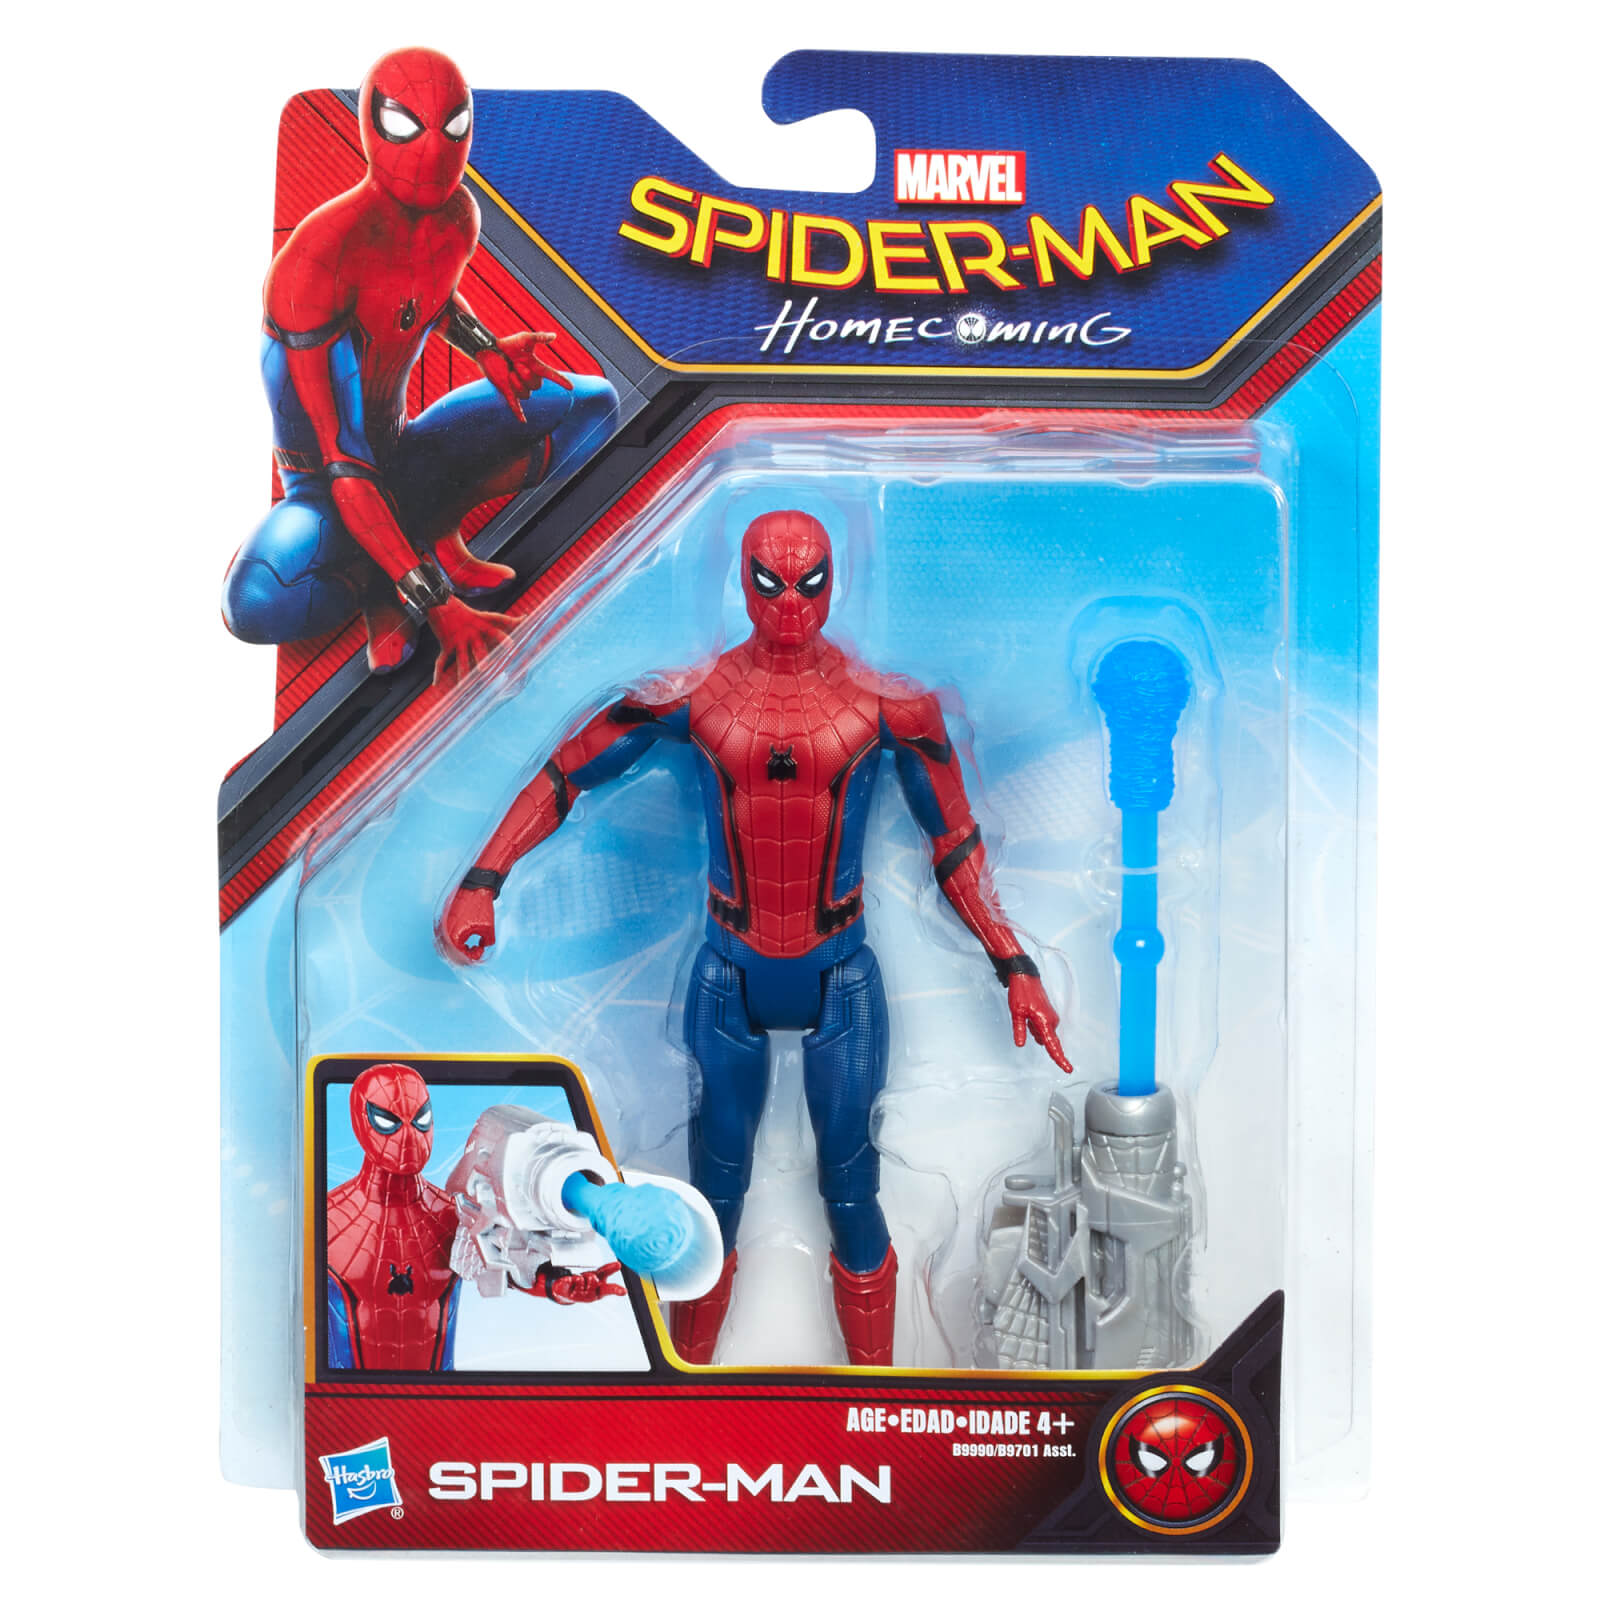 Hasbro Spider-Man Homecoming Action Figure - Spider-Man